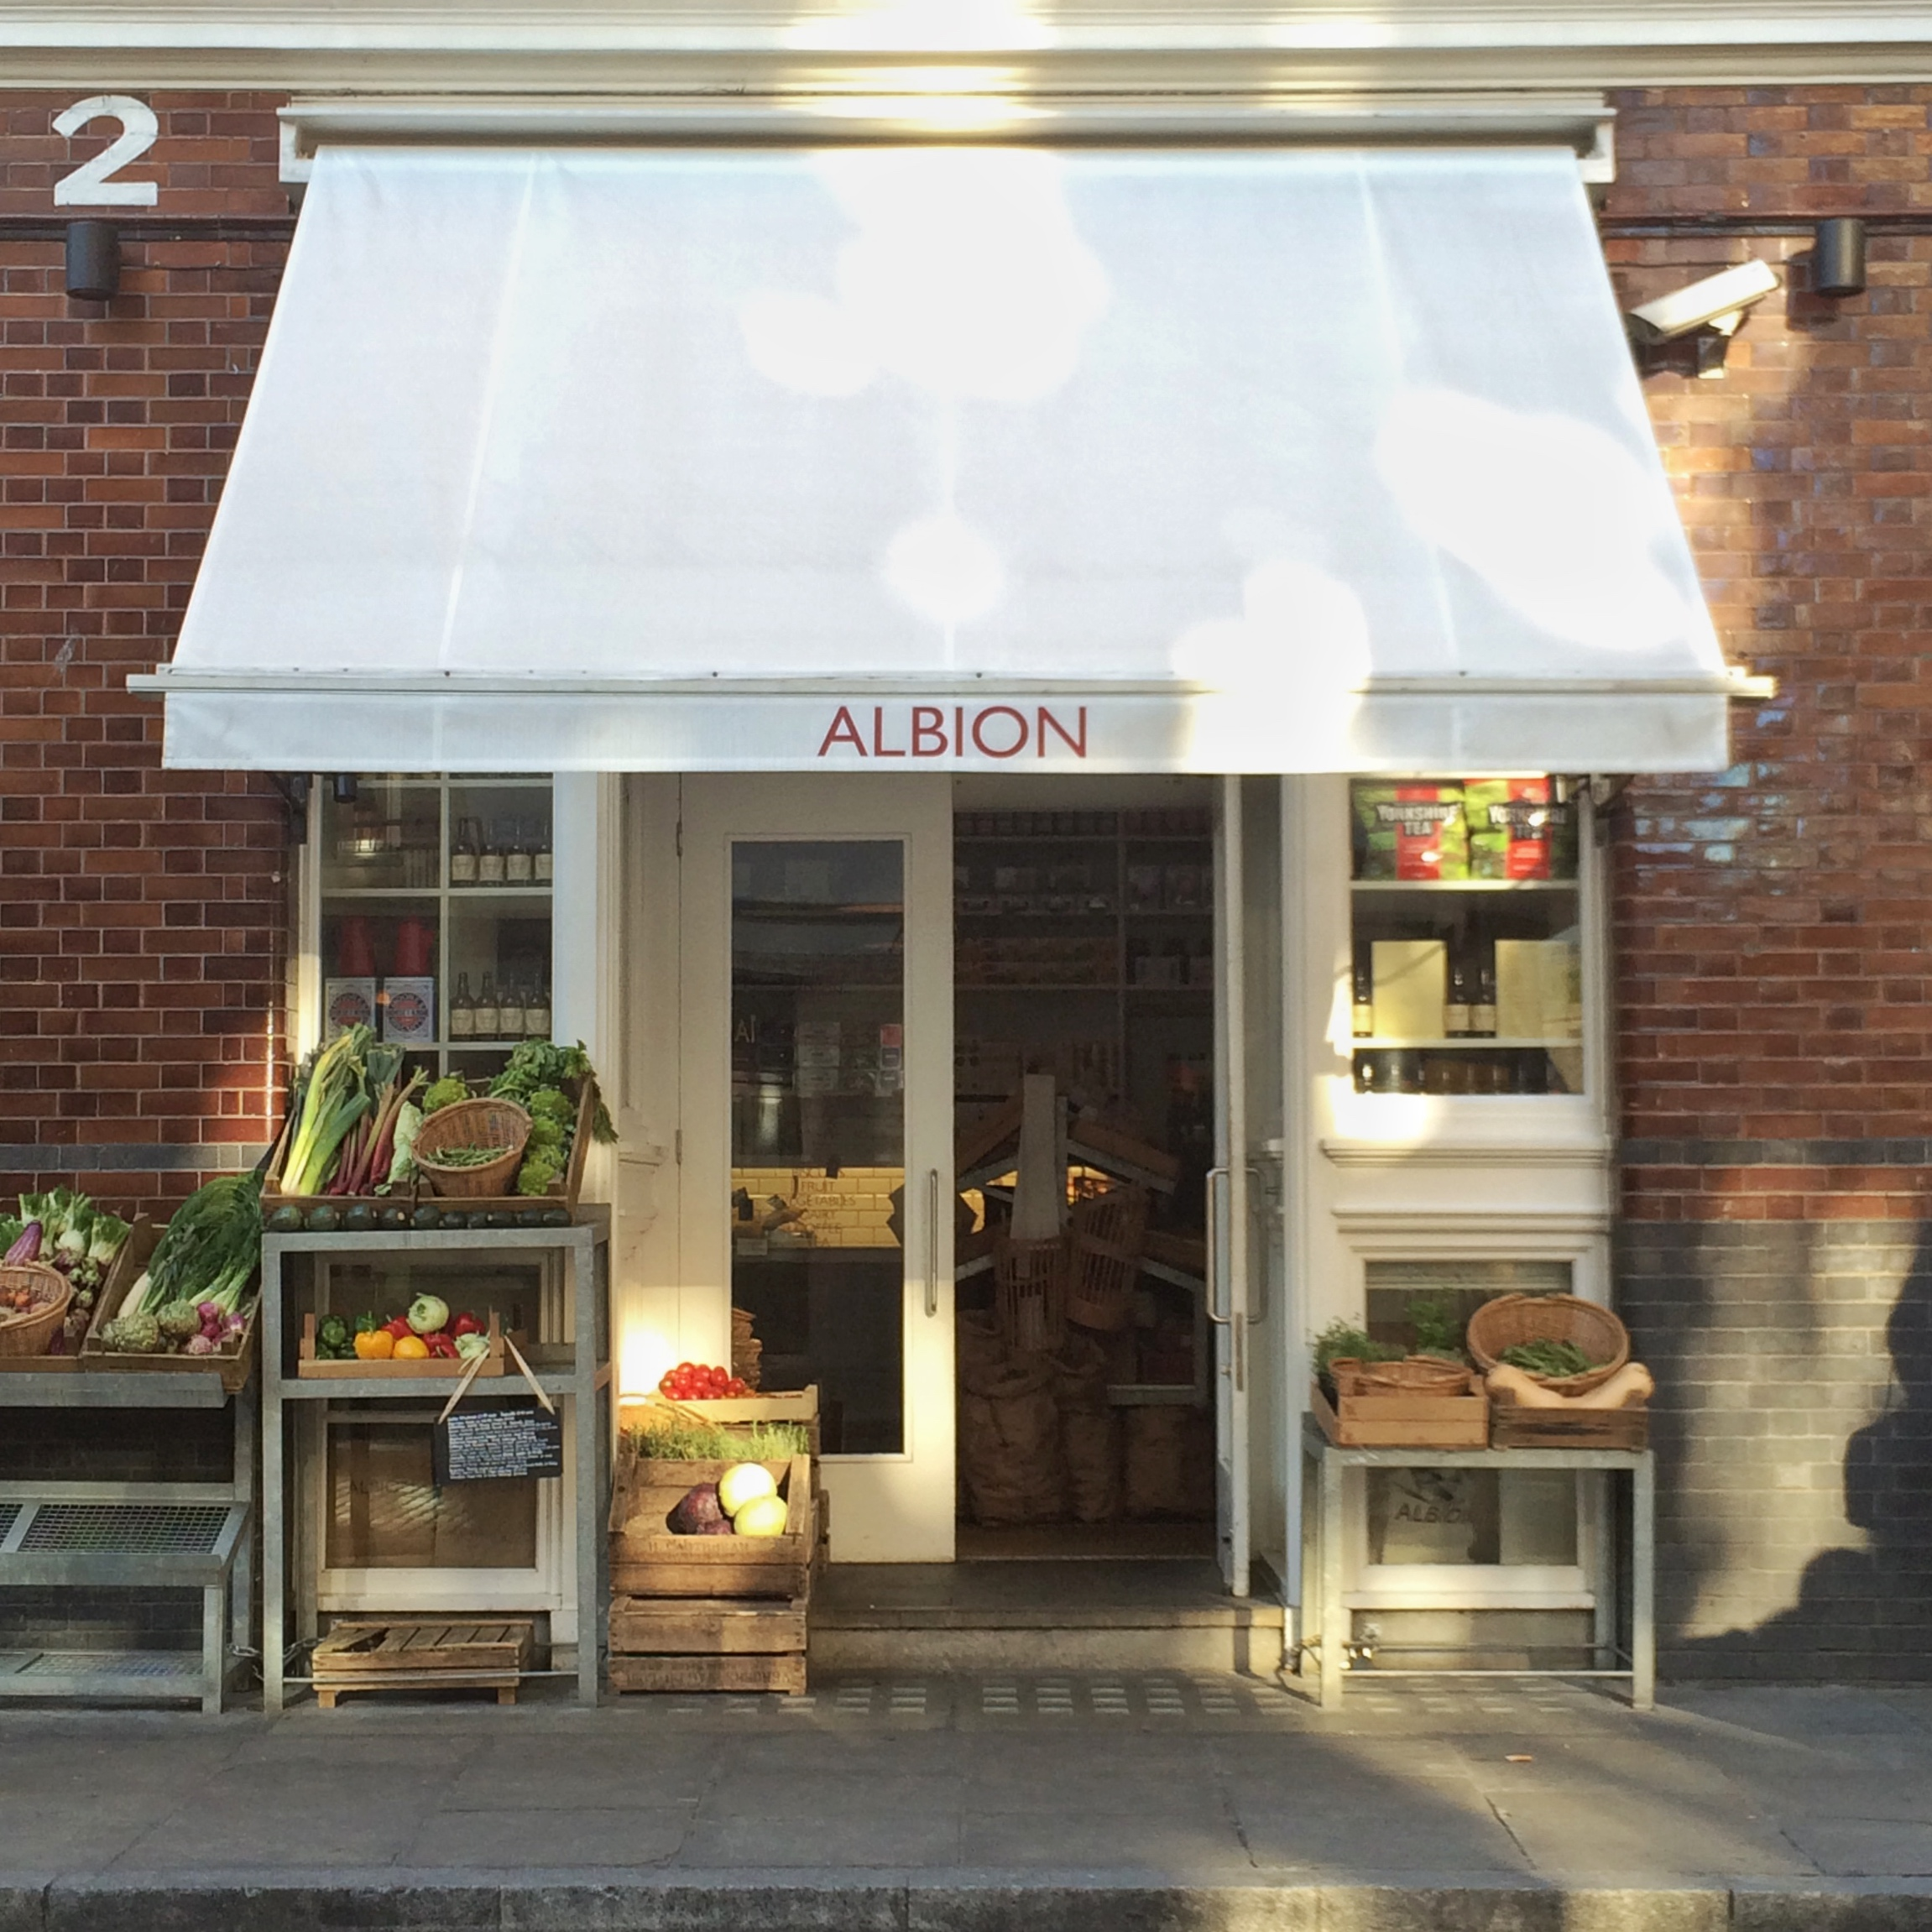 Albion London Nonsolofood